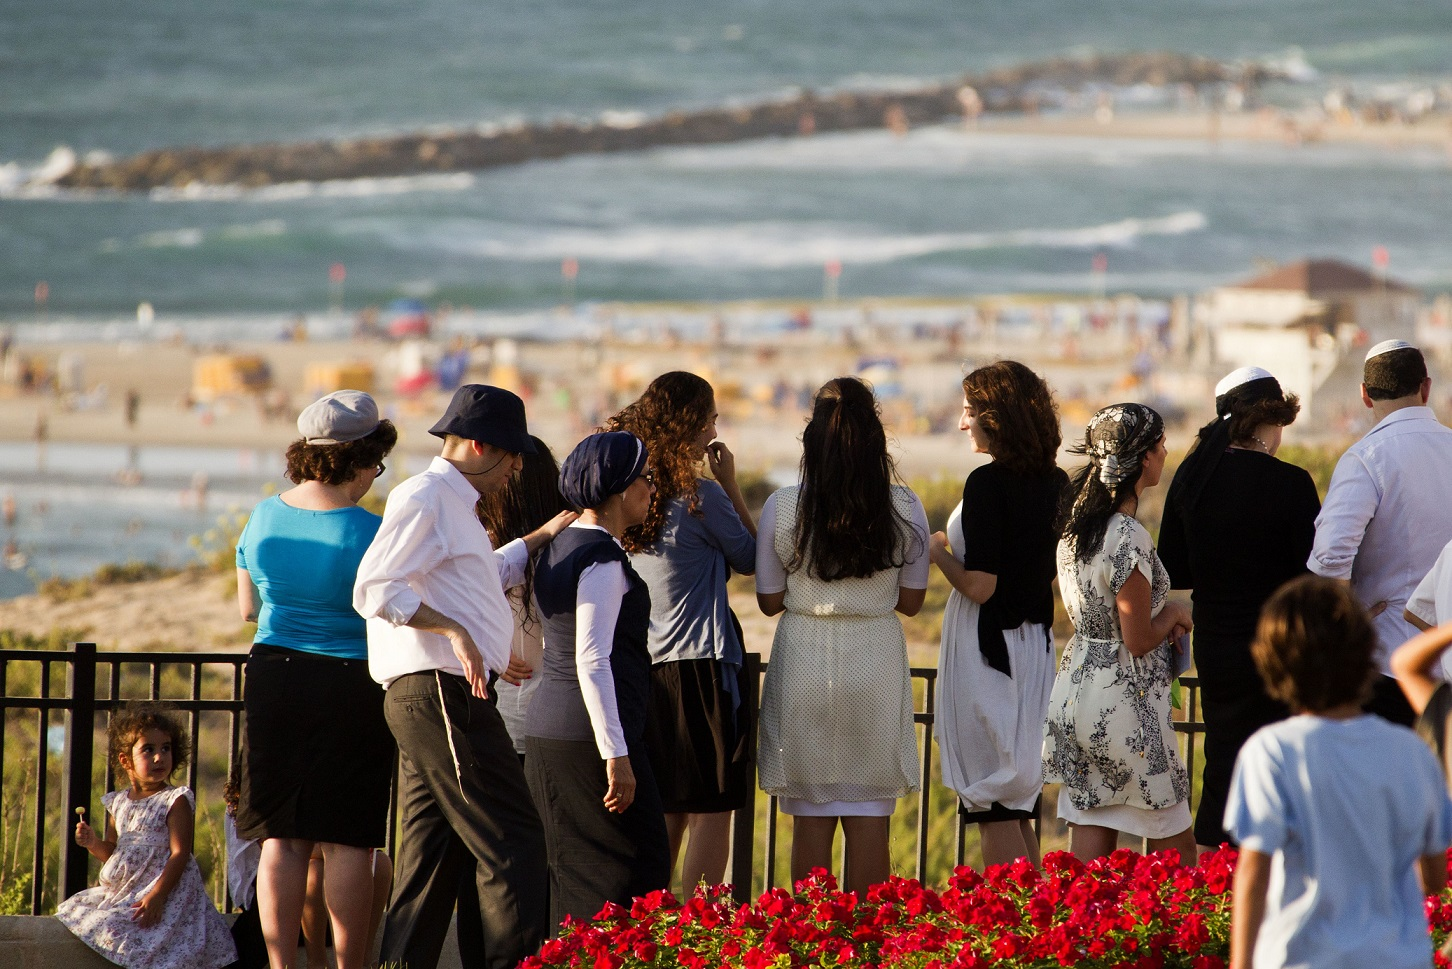 Religious Jews read the Tashlich prayer in the Israeli coastal city of Netanya in celebration of Rosh Hashana on 5 September 2013 (AFP)